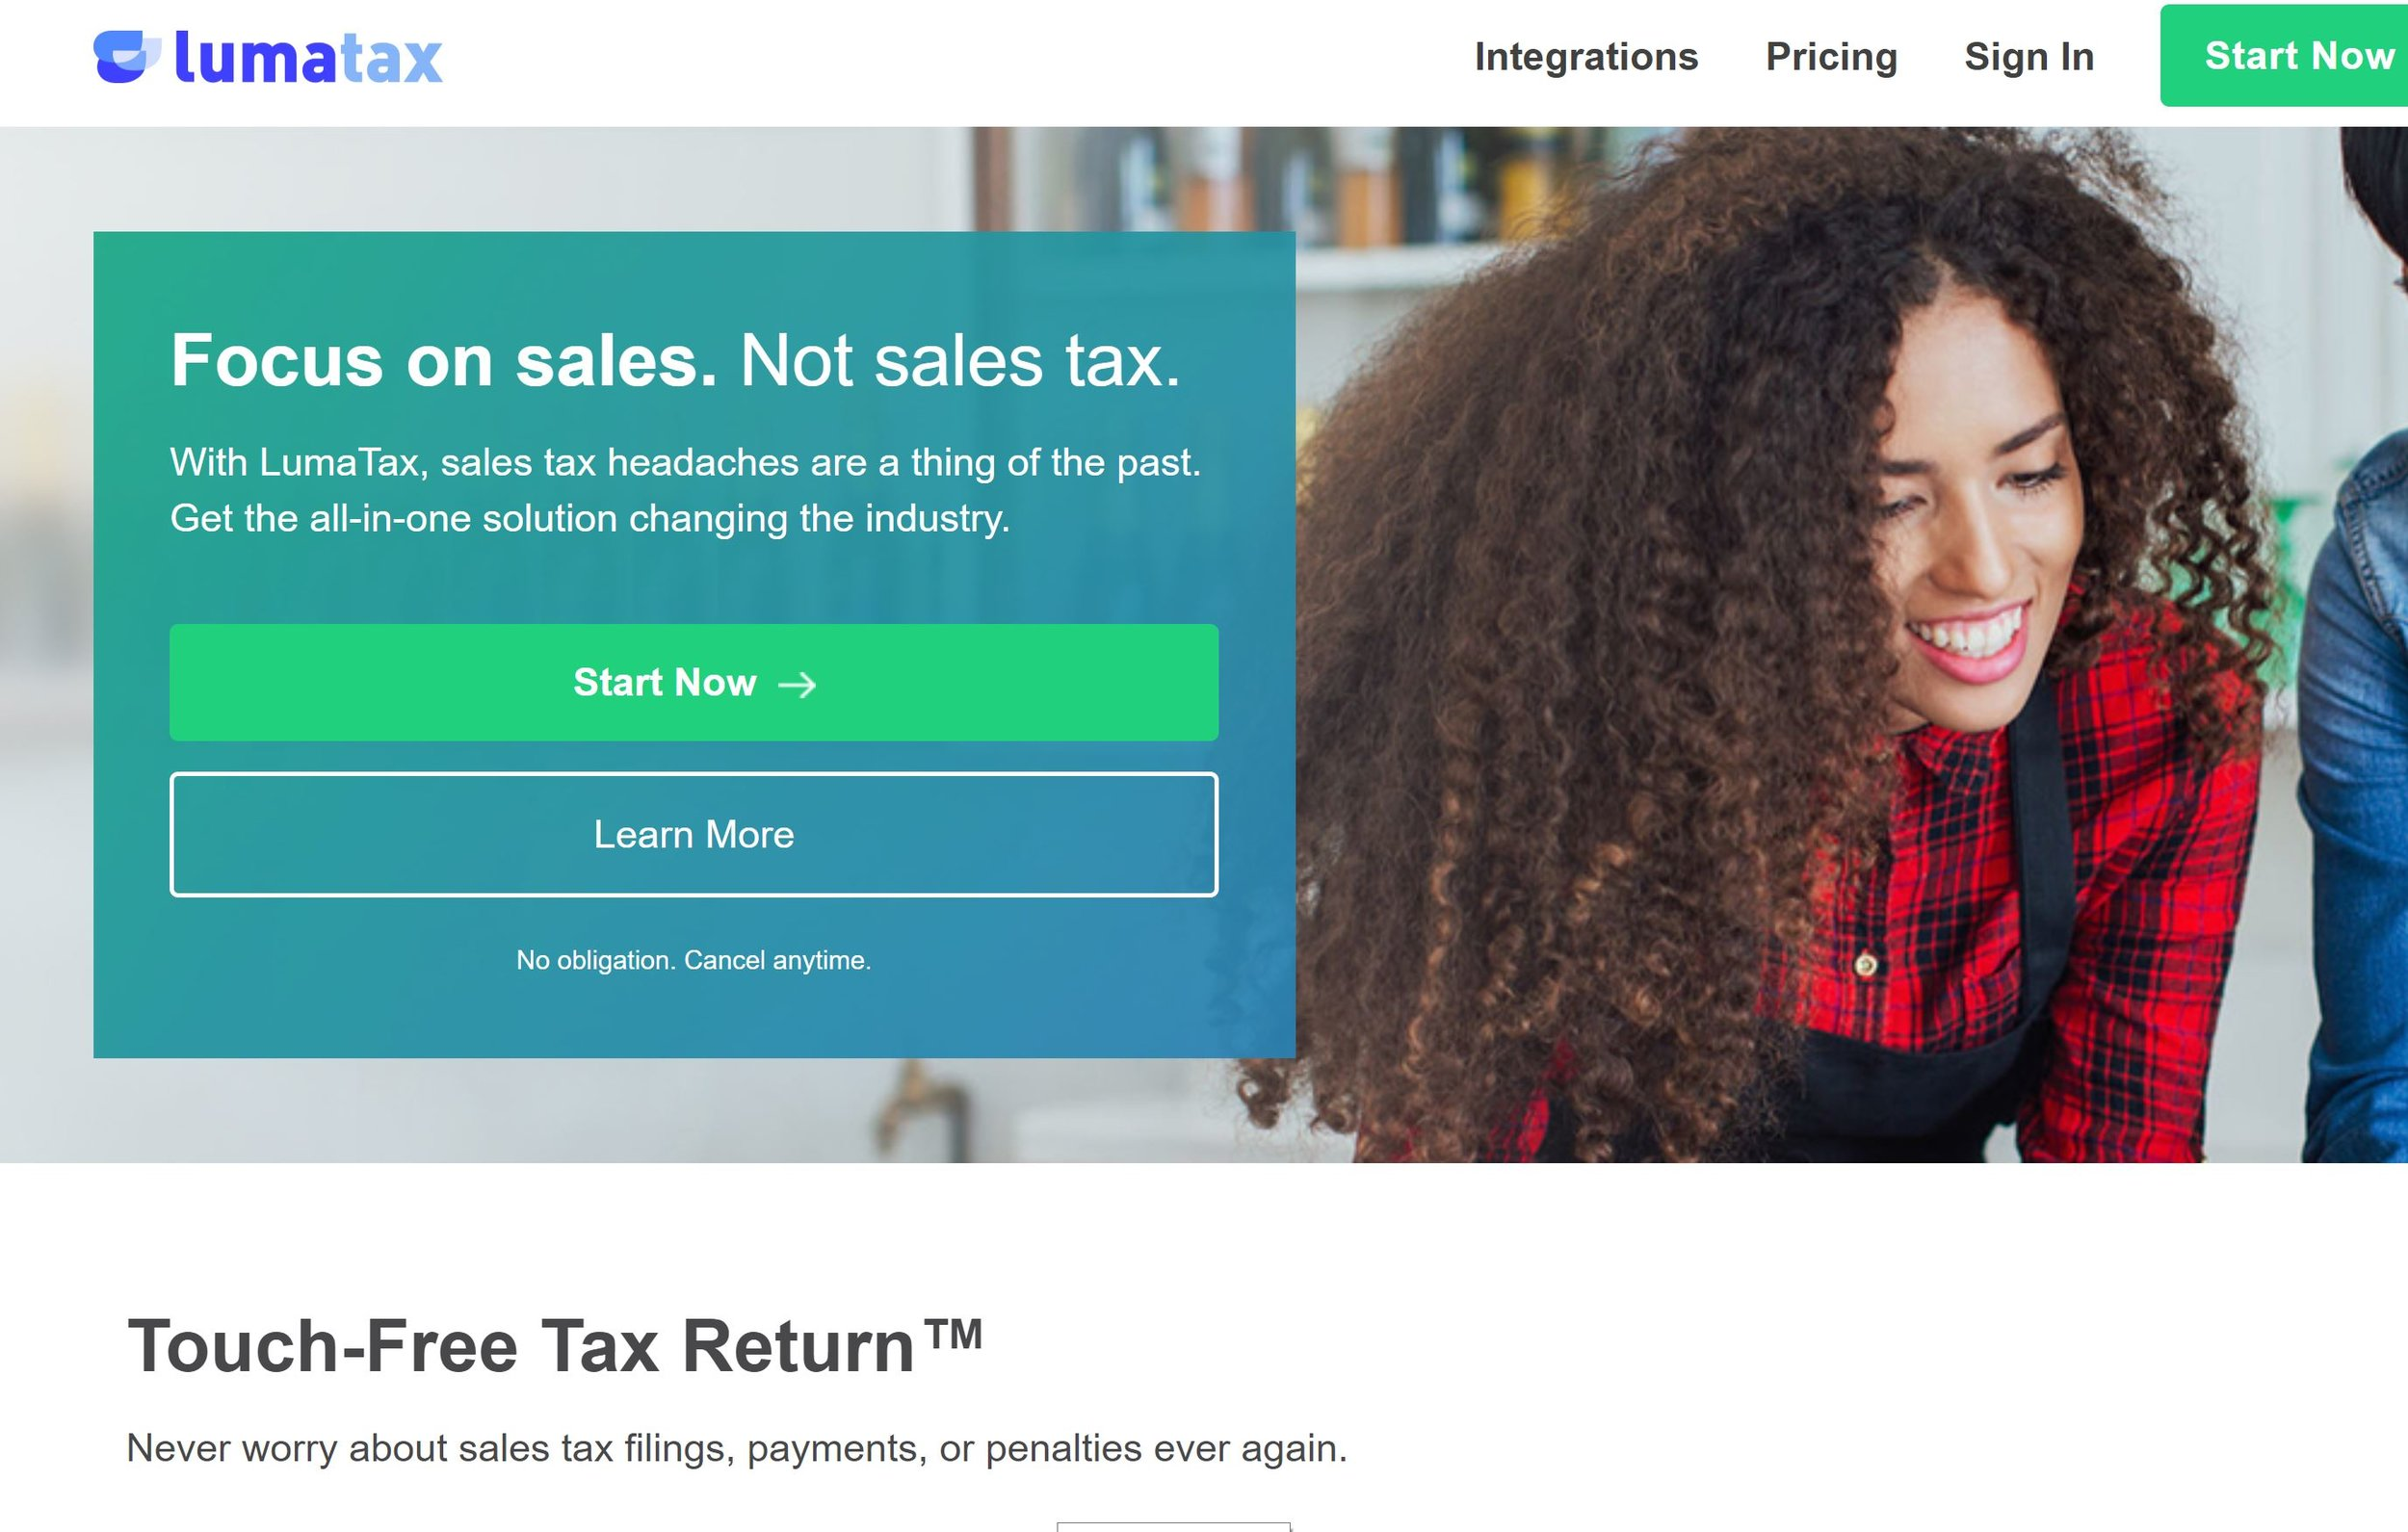 LumaTax - Sales Tax Automation for Businesses and Accountants